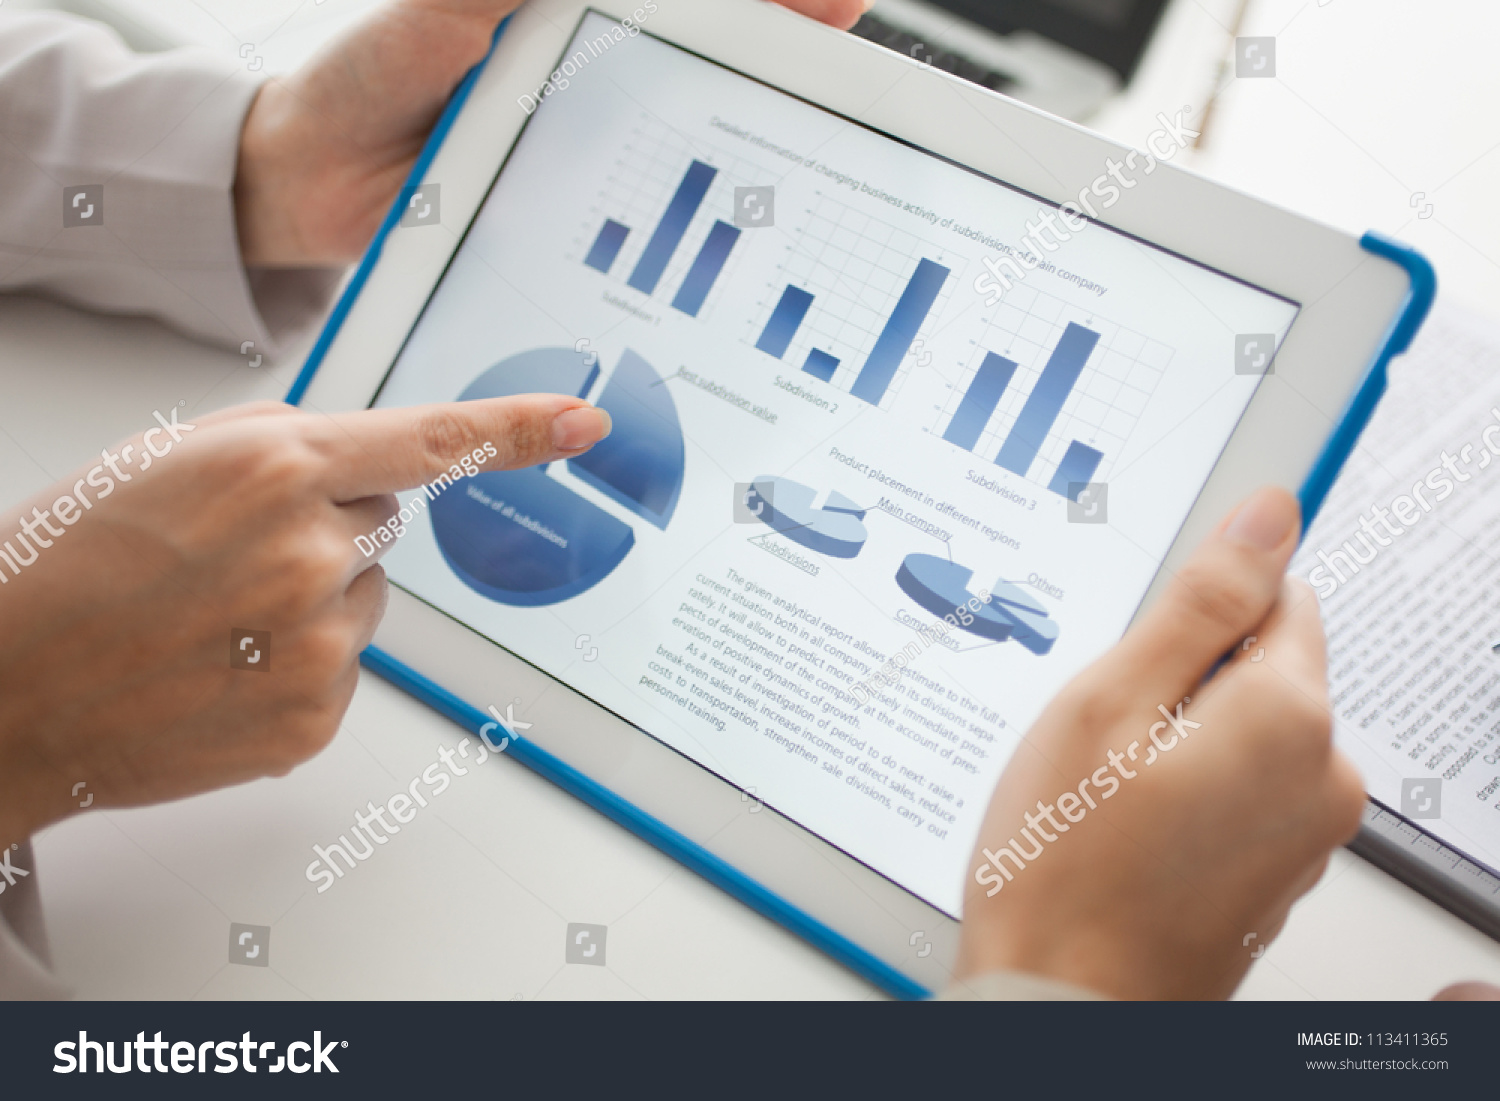 Close Up Of A Touchscreen With Financial Data In Form Of Charts And Diagrams Stock Photo